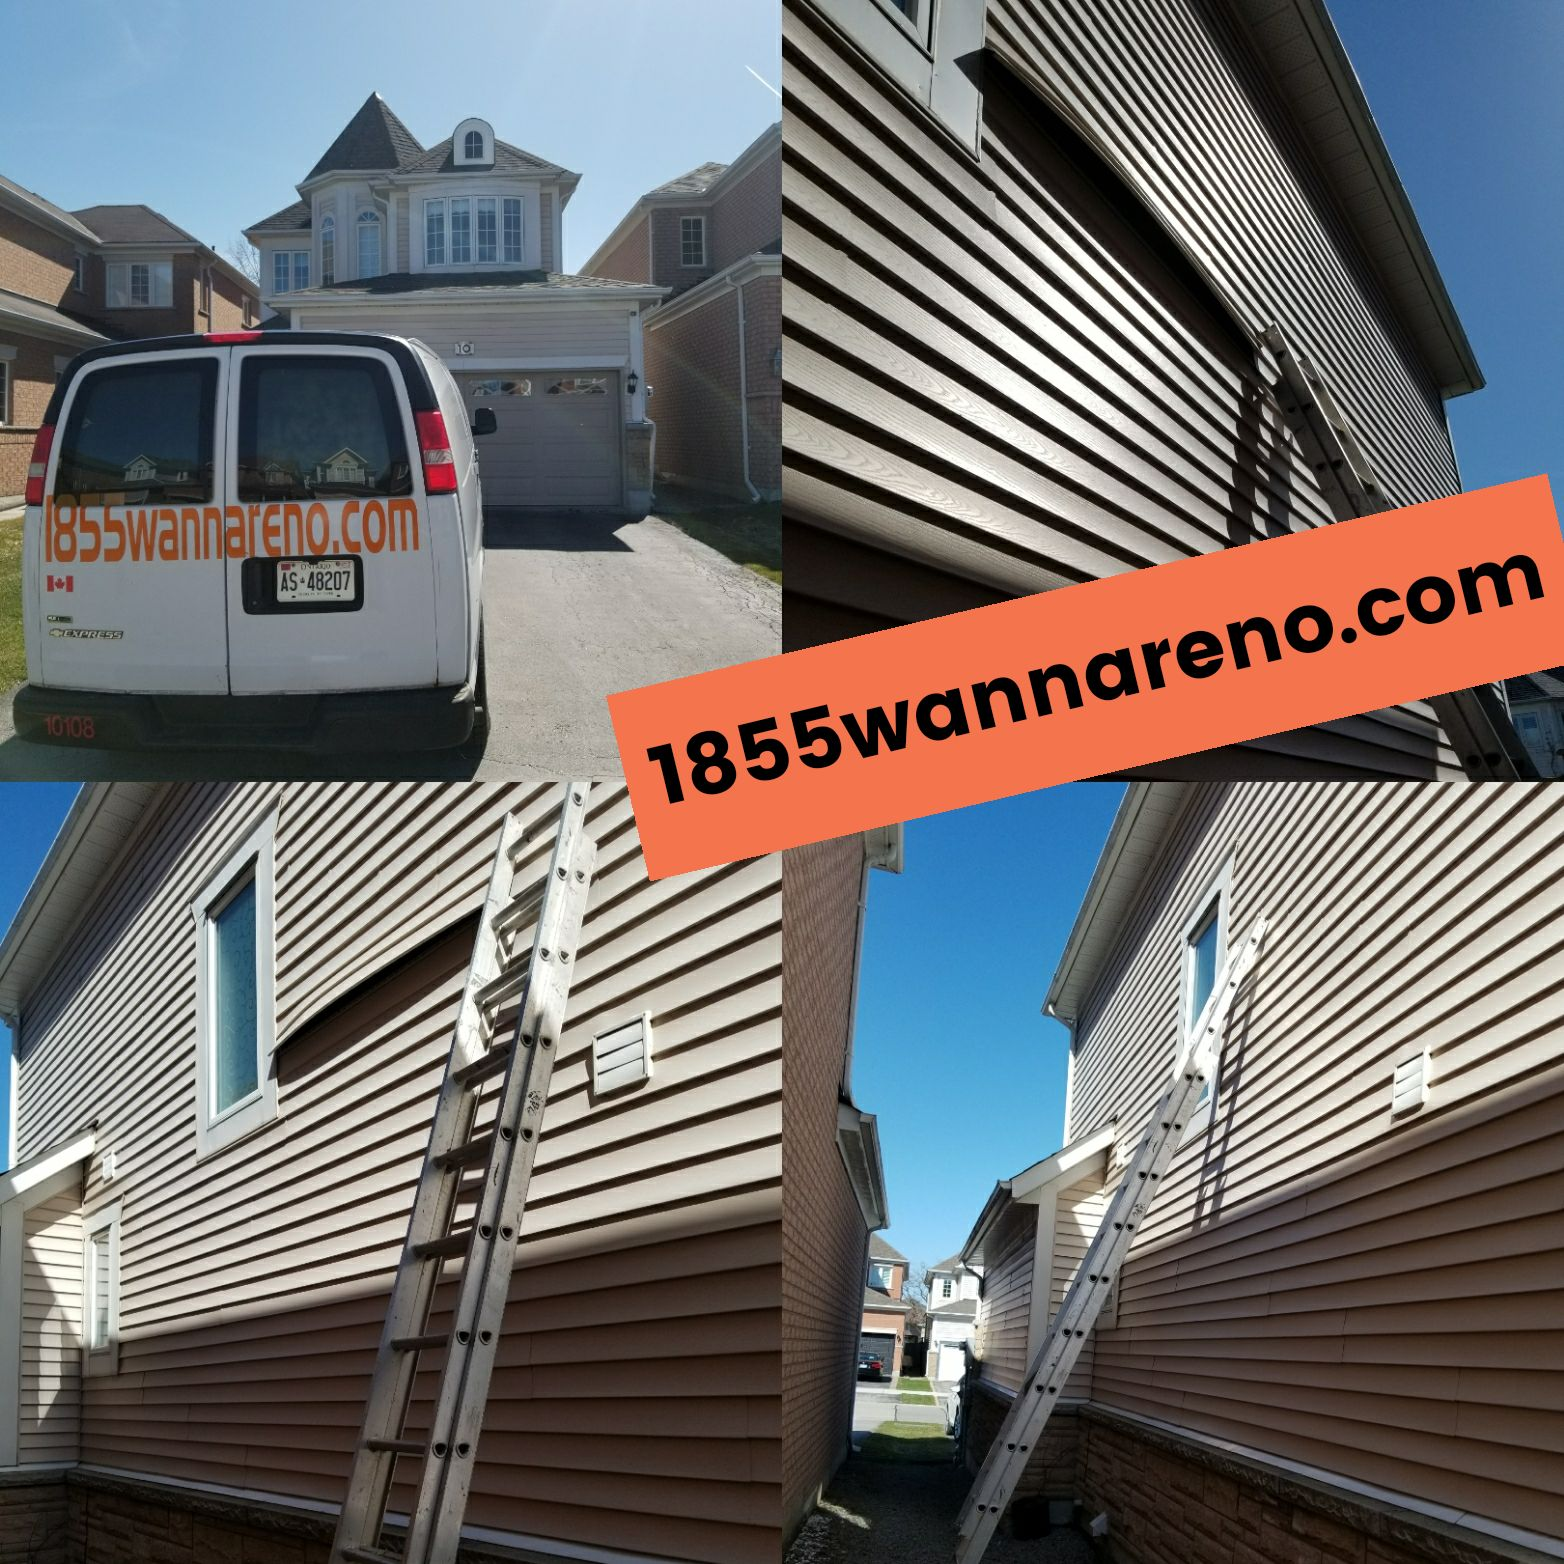 Siding repair in Whitby